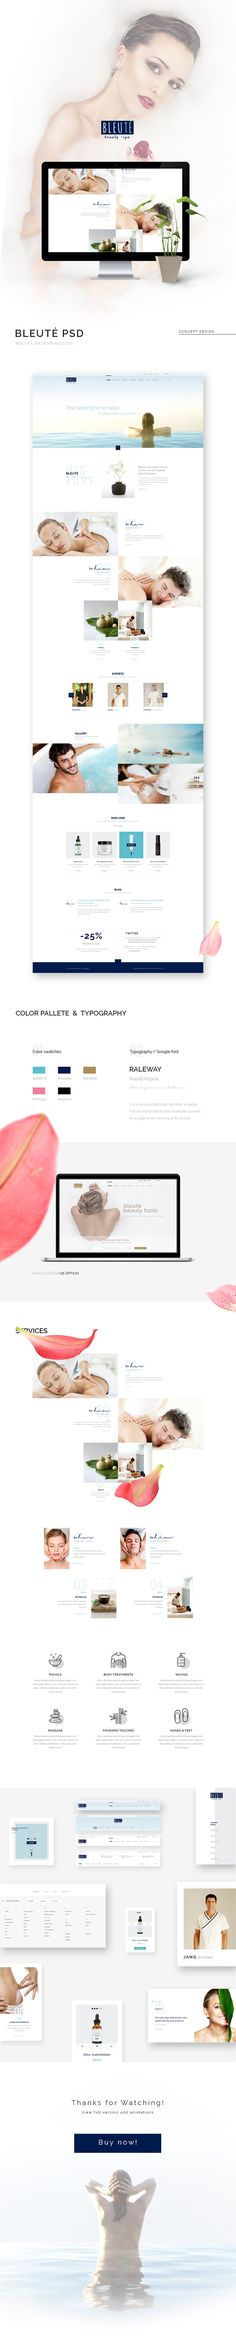 Bleute - Beauty | Spa | Hair | Wellness/Salon PSD - PSD Templates | ThemeForest  Bleuté is super clean and minimal design. It is so suitable for Spa centres and the other beauty services like: hair, nail, makeup…